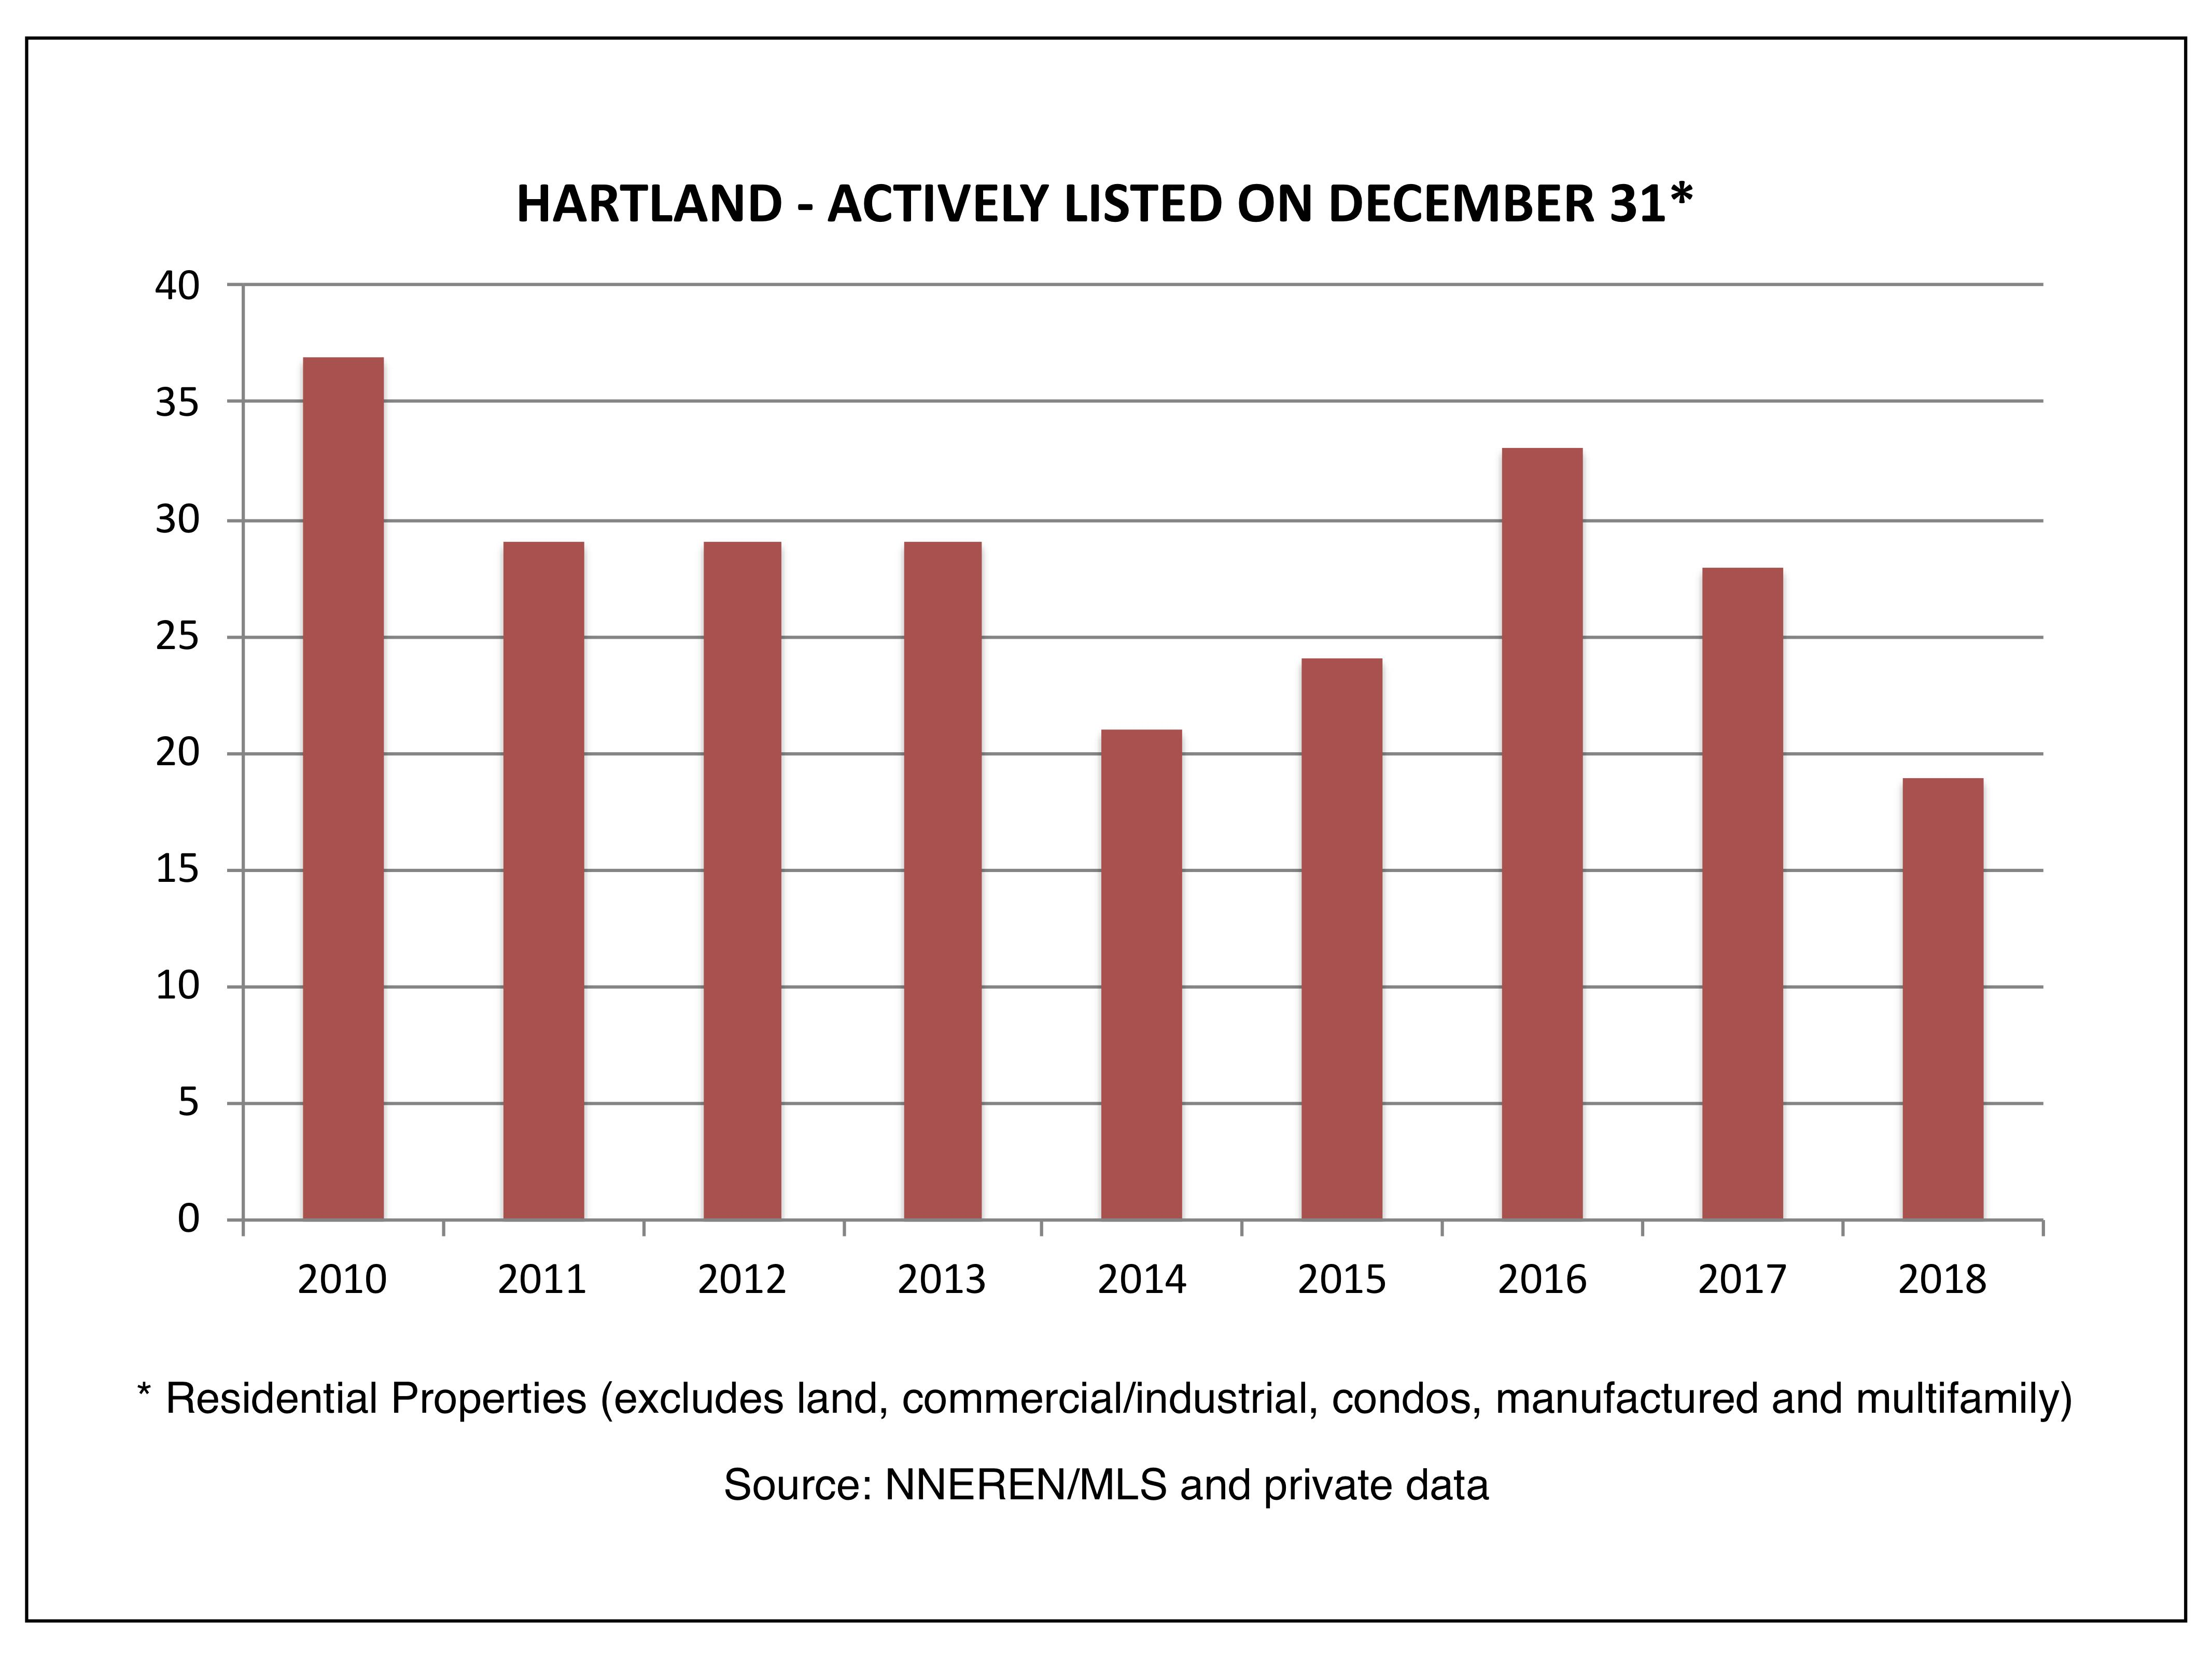 Hartland - Actively Listed on December 31